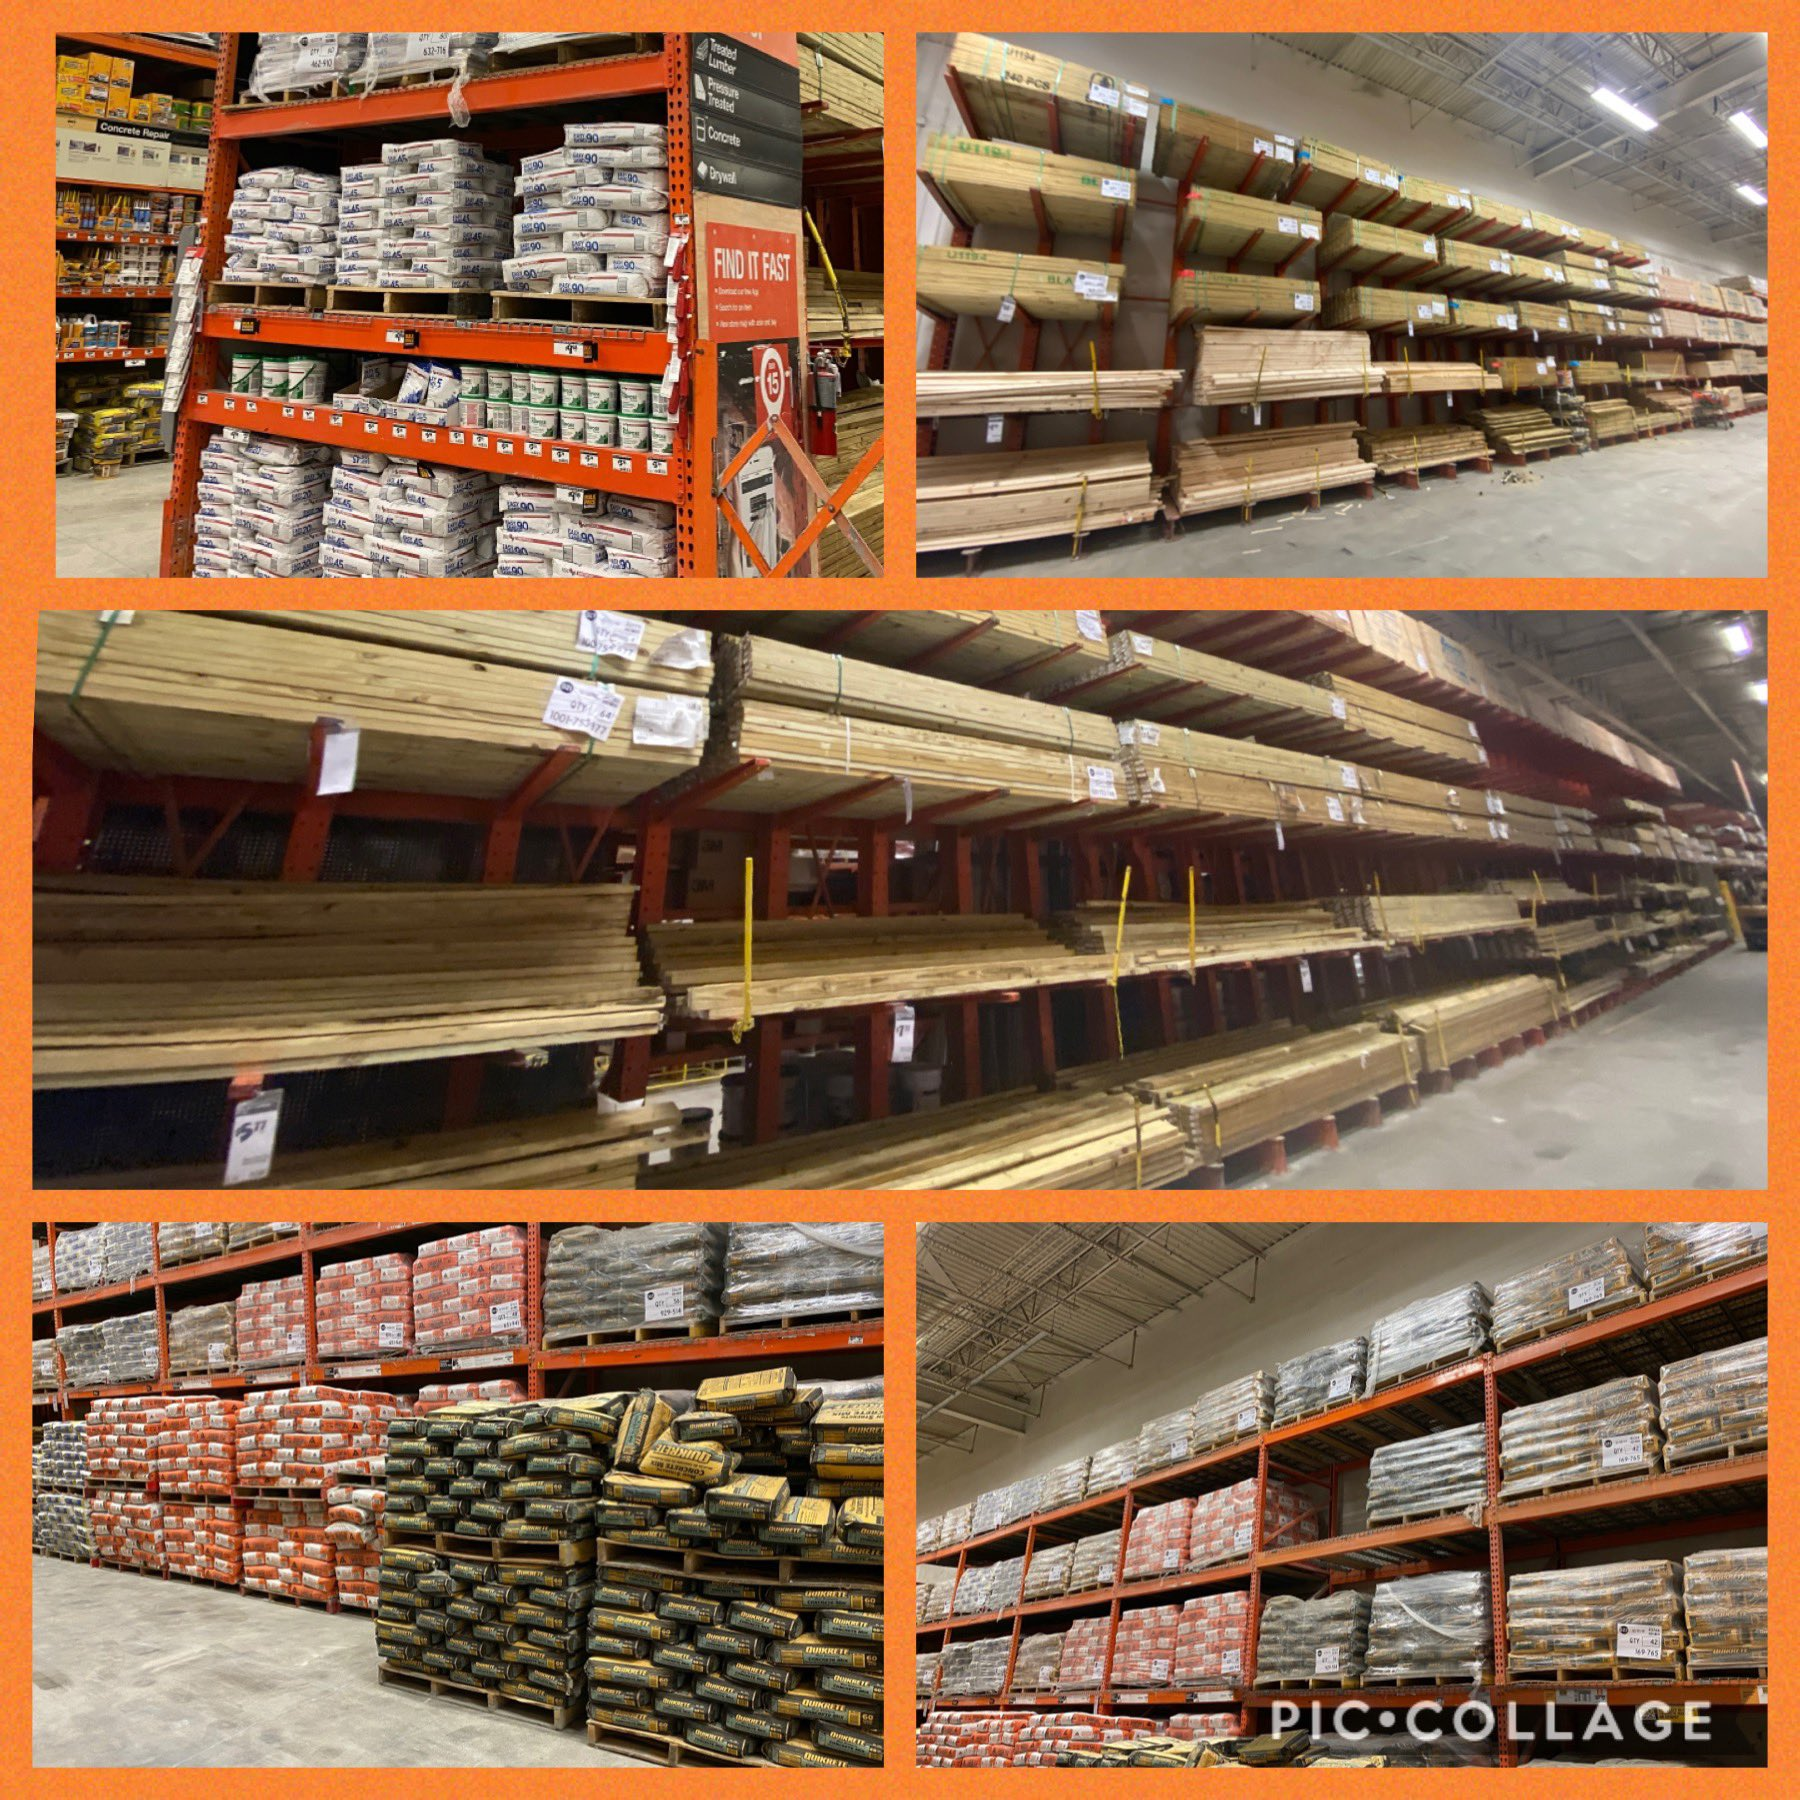 Anthony Villanueva On Twitter Come Into Your Local Pinecrest Home Depot We Ready To Help You Get Your Projects Going On This Beautiful Saturday Morning Great Job Team D21 22 30 Howdoersgetmoredone Pinecrestpride Team6306